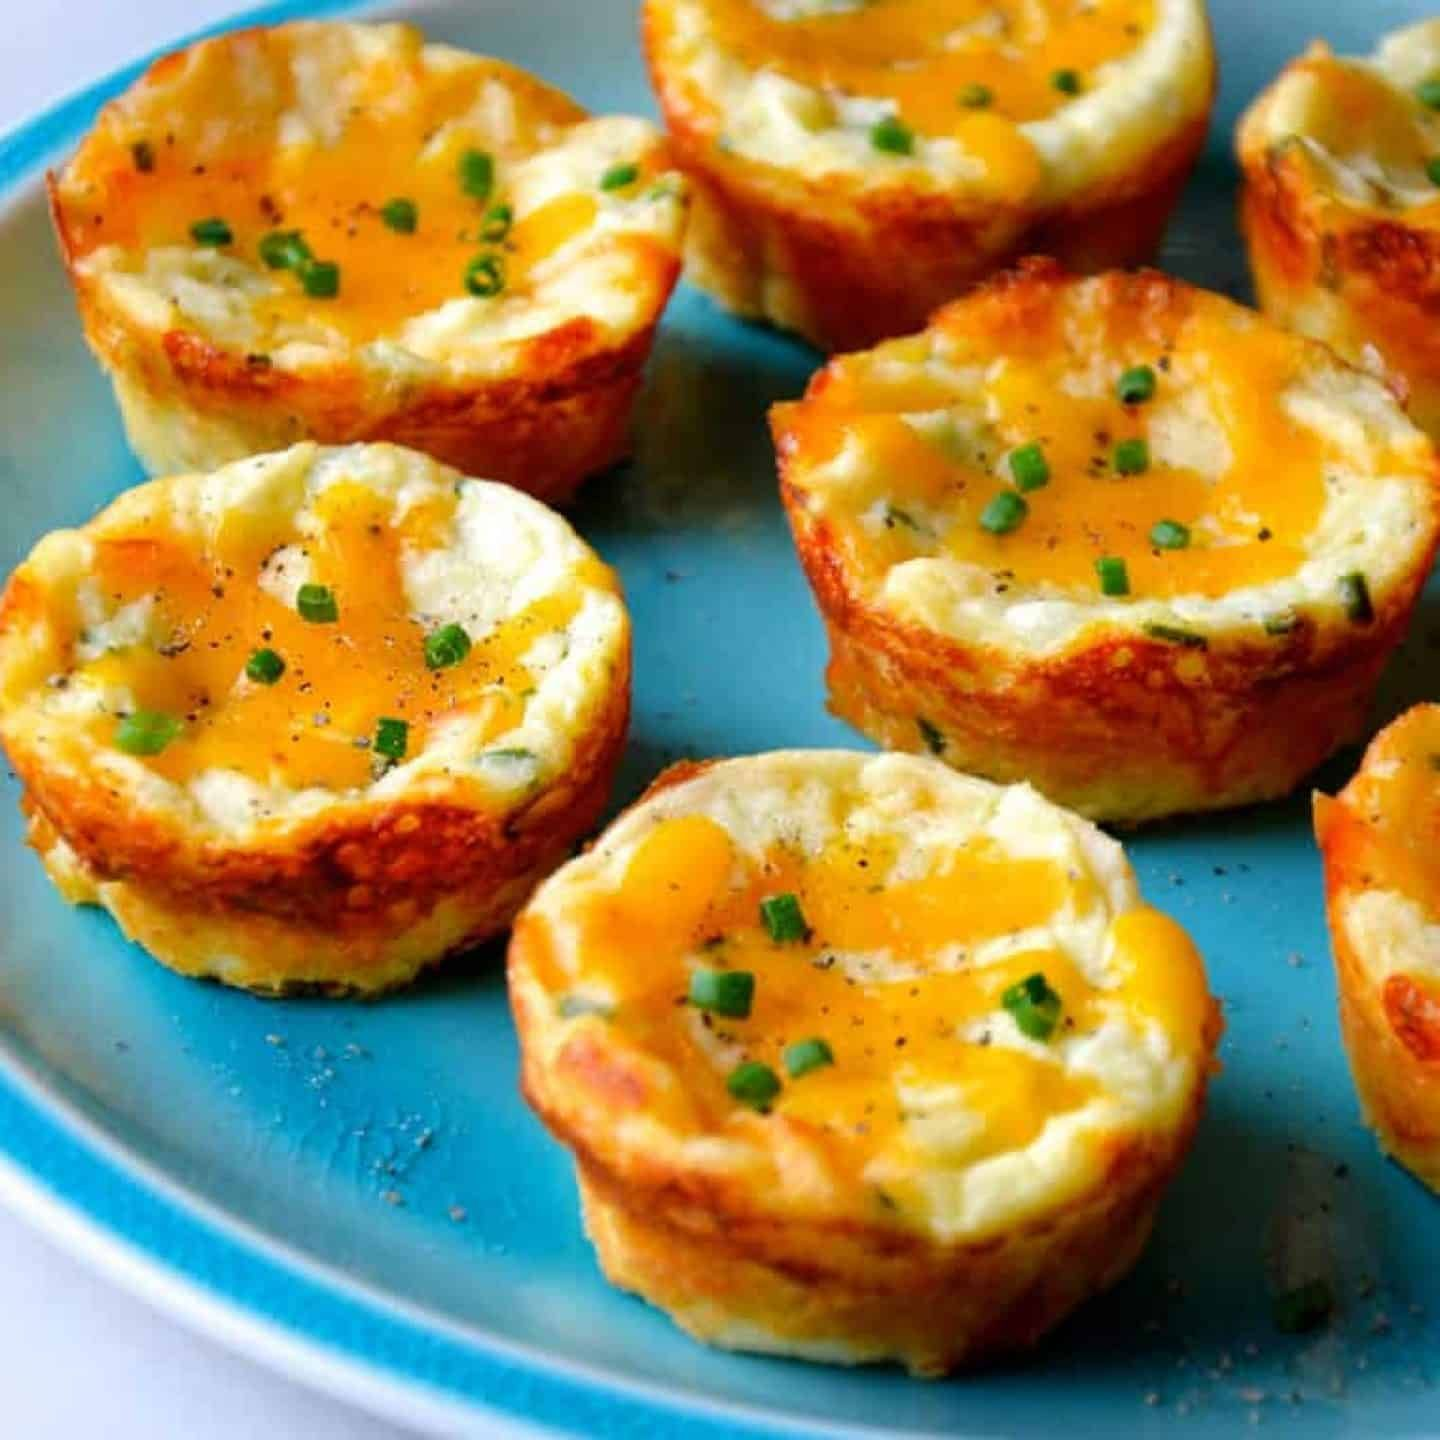 Cheesy Leftover Mashed Potato Muffins Potatopancakesfrommashedpotatoes Cheesy Leftover Mashed Potato Muffins Recipe From Justataste Com